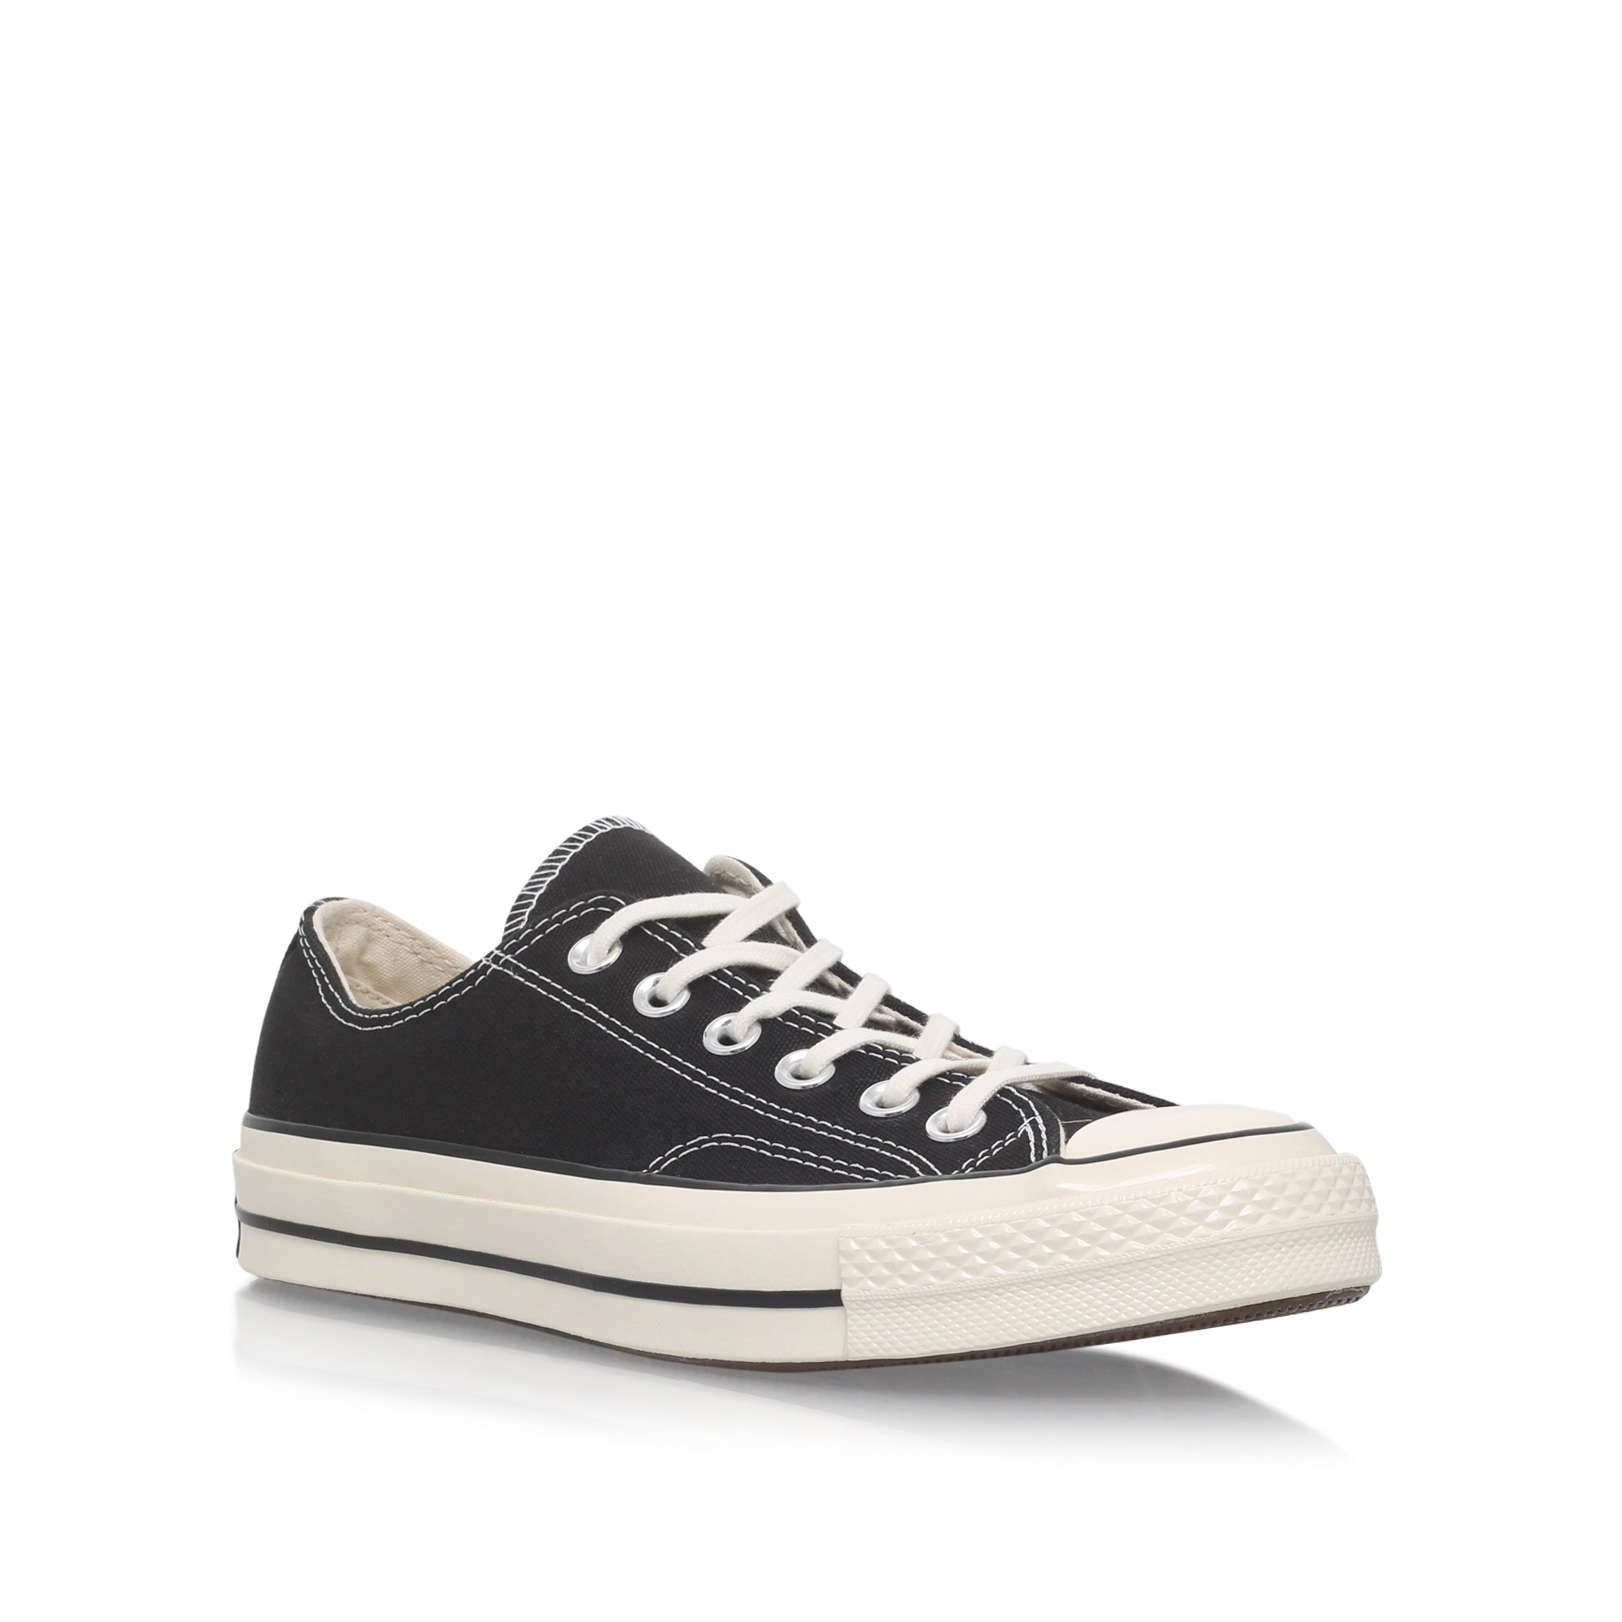 converse all star low top converse free black low top. Black Bedroom Furniture Sets. Home Design Ideas